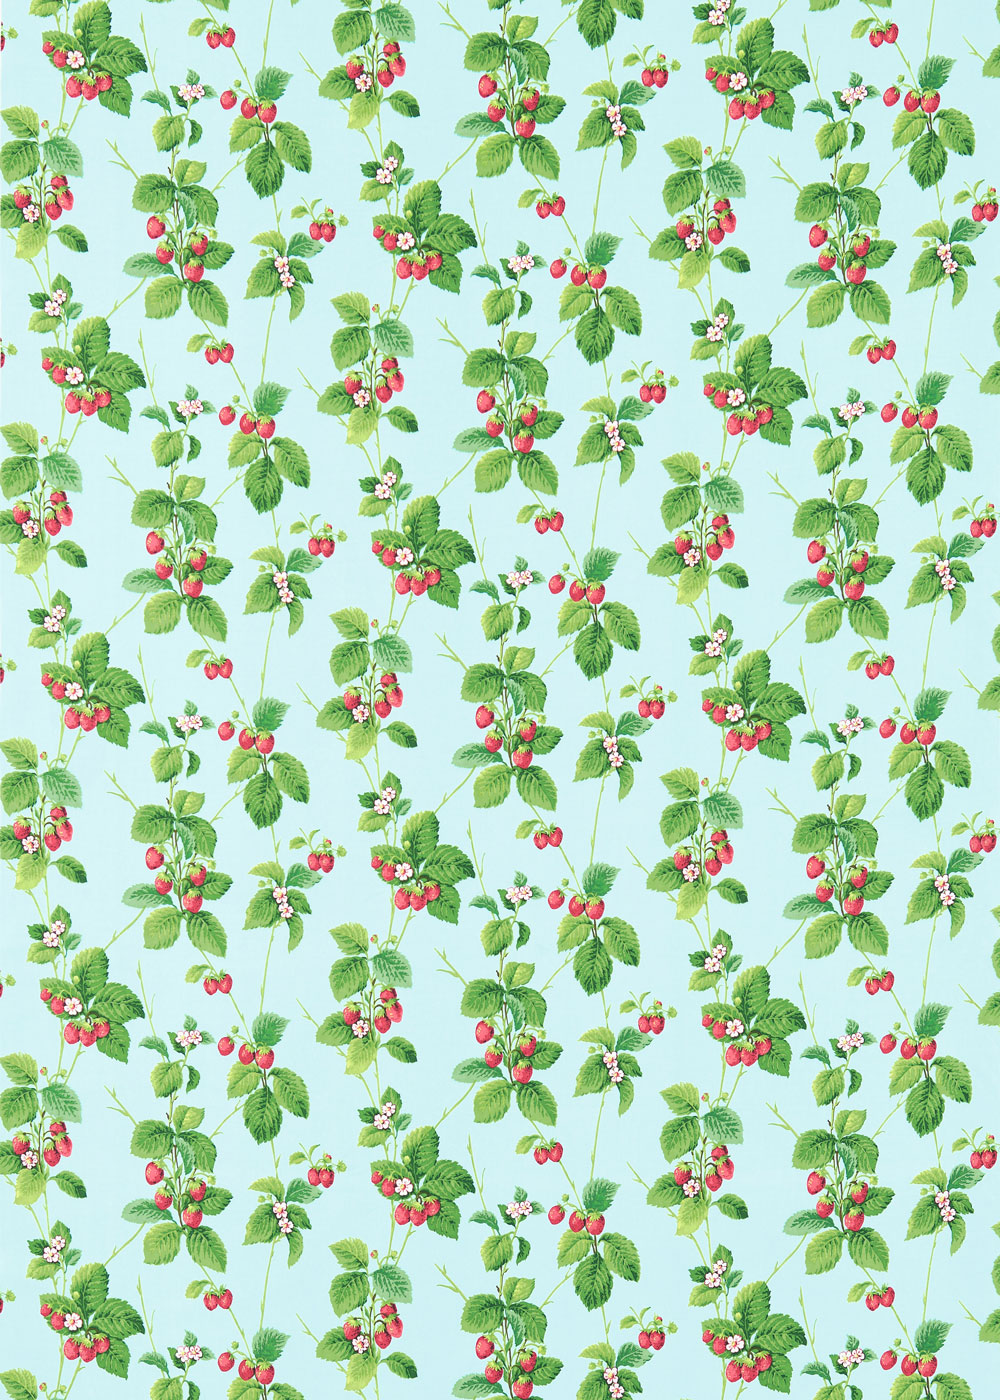 Sanderson Summer Strawberries Strawberry / Sky Fabric - Product code: 224342